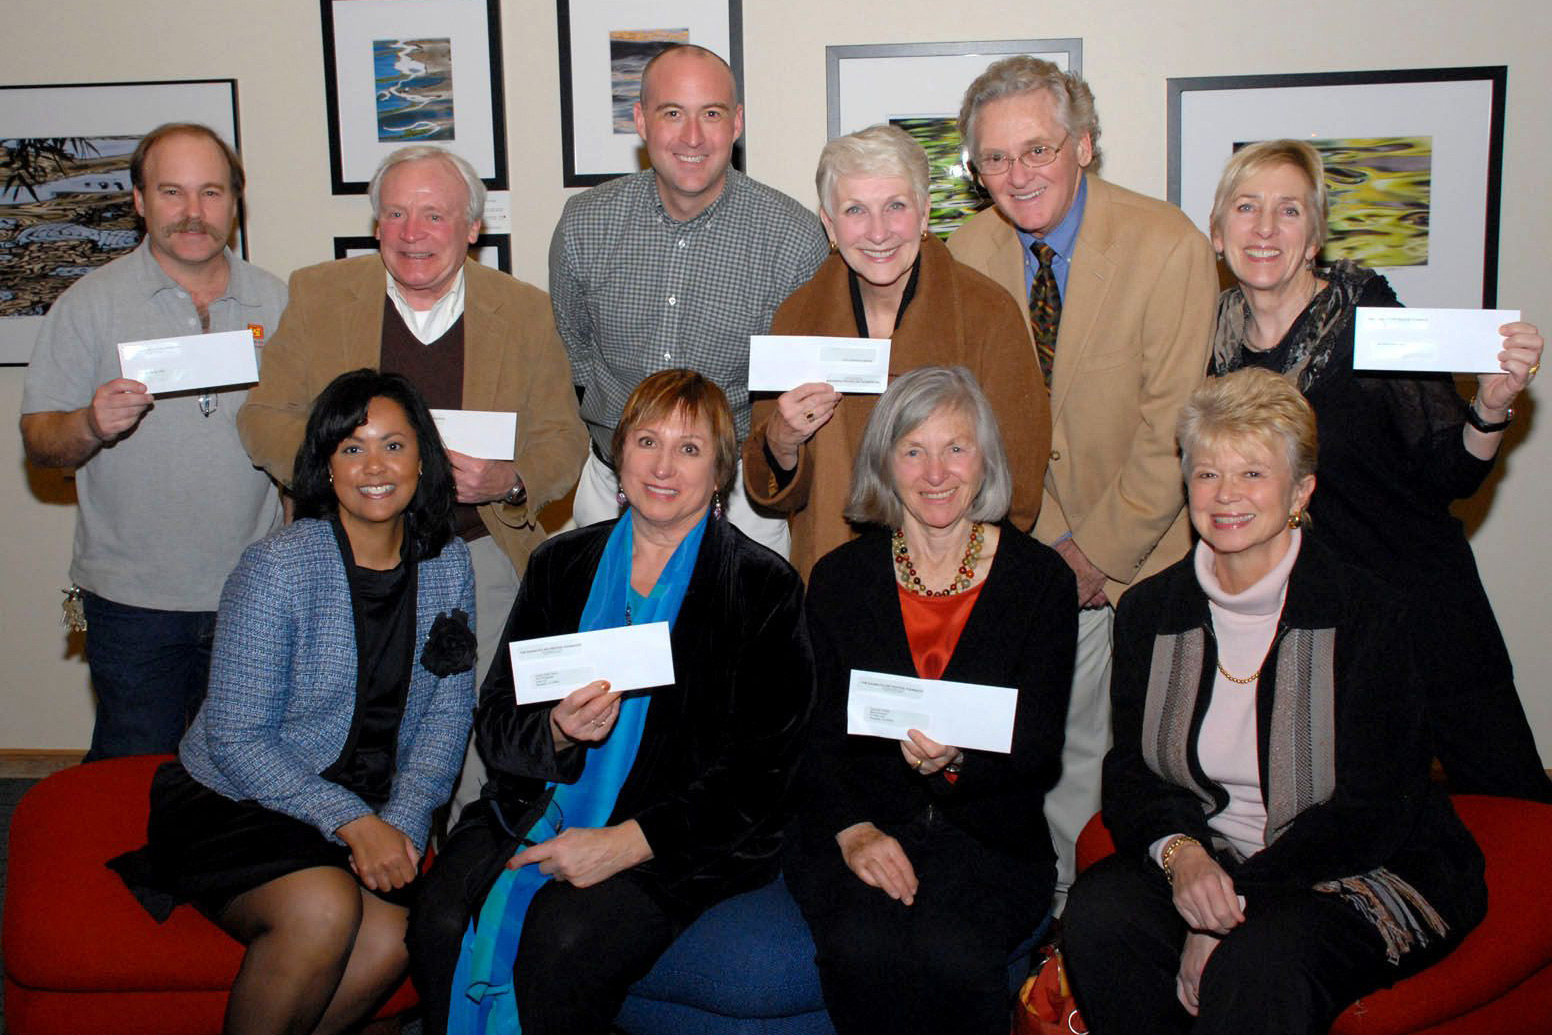 Sausalito Art Festival Foundation Executive Director Ann Dickson (lower left) with representatives of the nine nonprofit community groups that were awarded more than $26,000 in Leonard Kaprielian Grants in 2012.